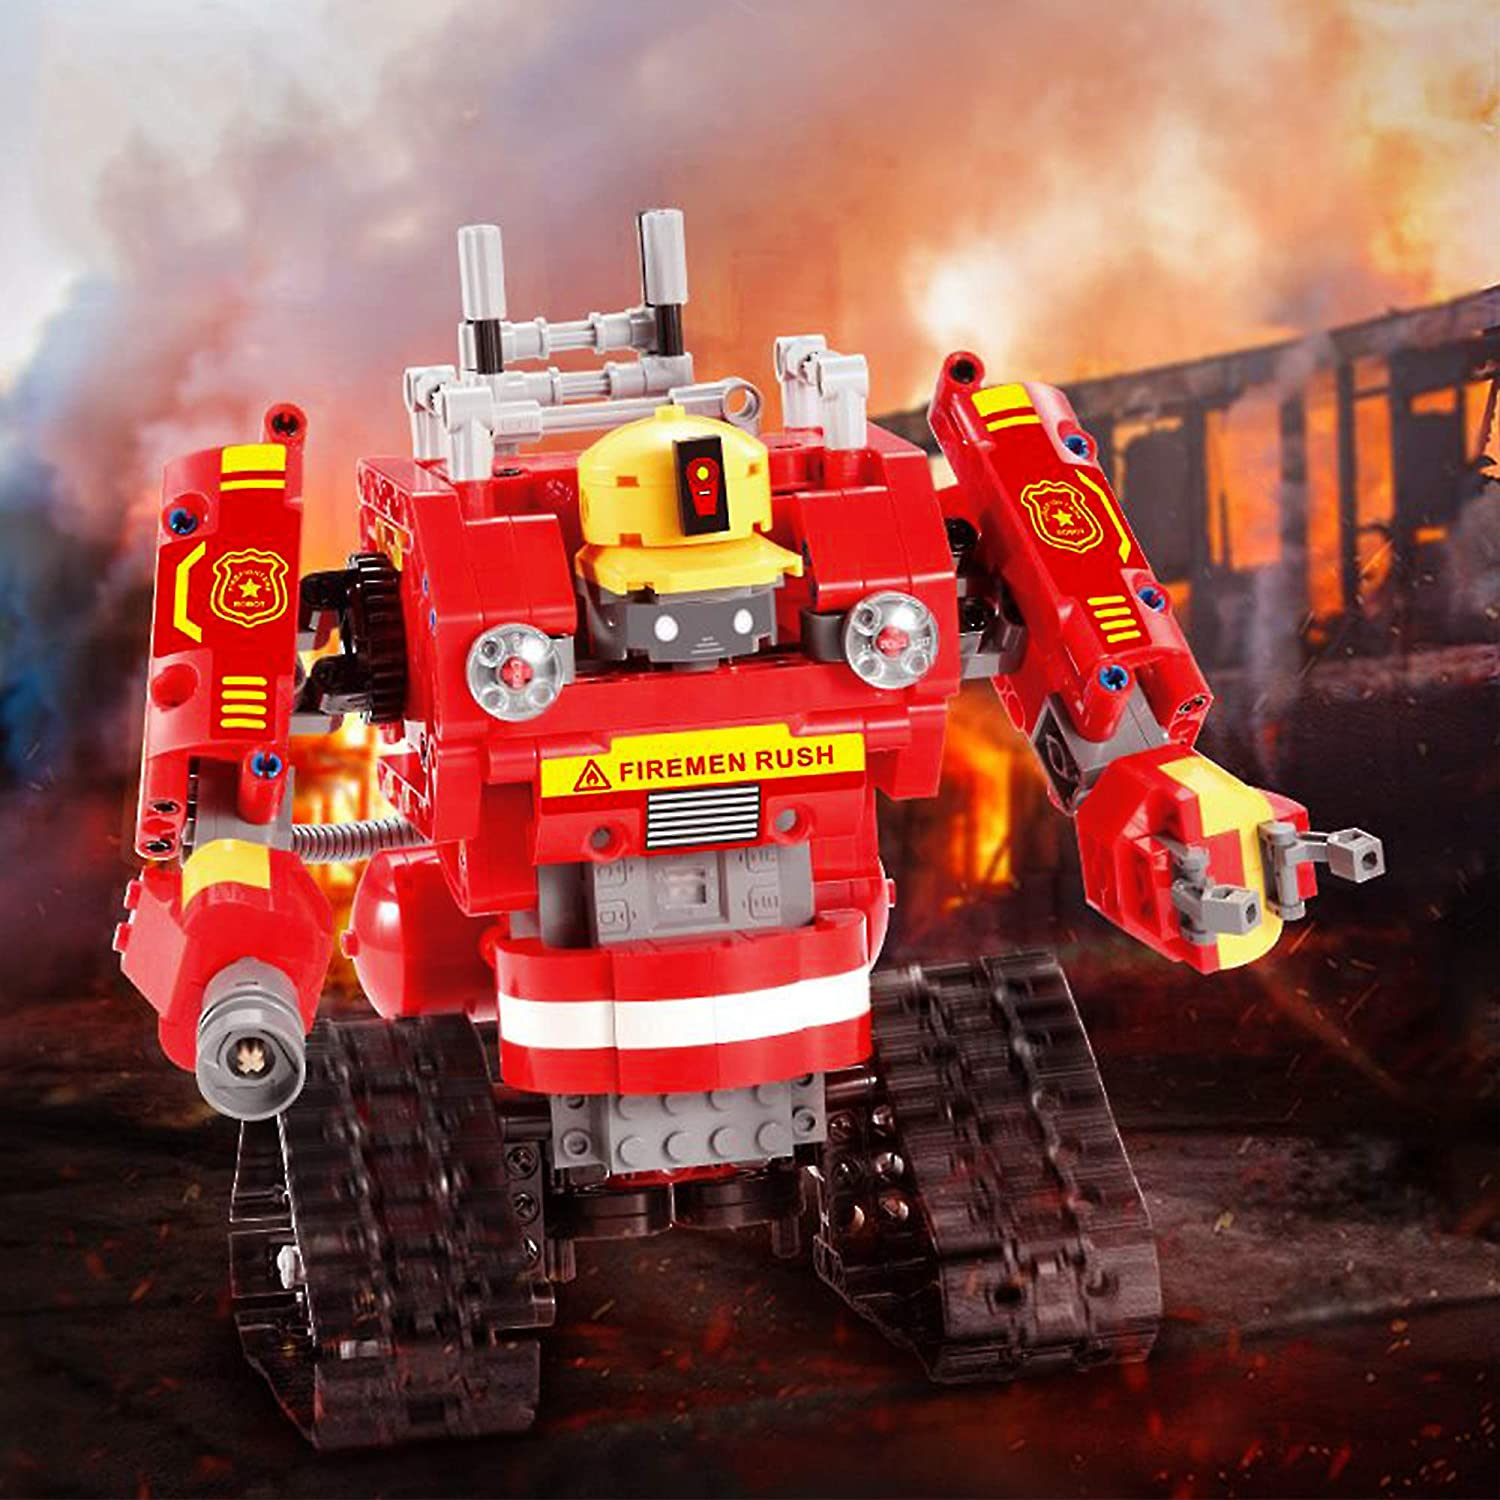 Toys Innovate STEM Building Toys Engineering Kit Toy Building Blocks Sets for Boys and Girls 6 7 8 9 10 Year Old Cars and Robots on Remote Control Fireman